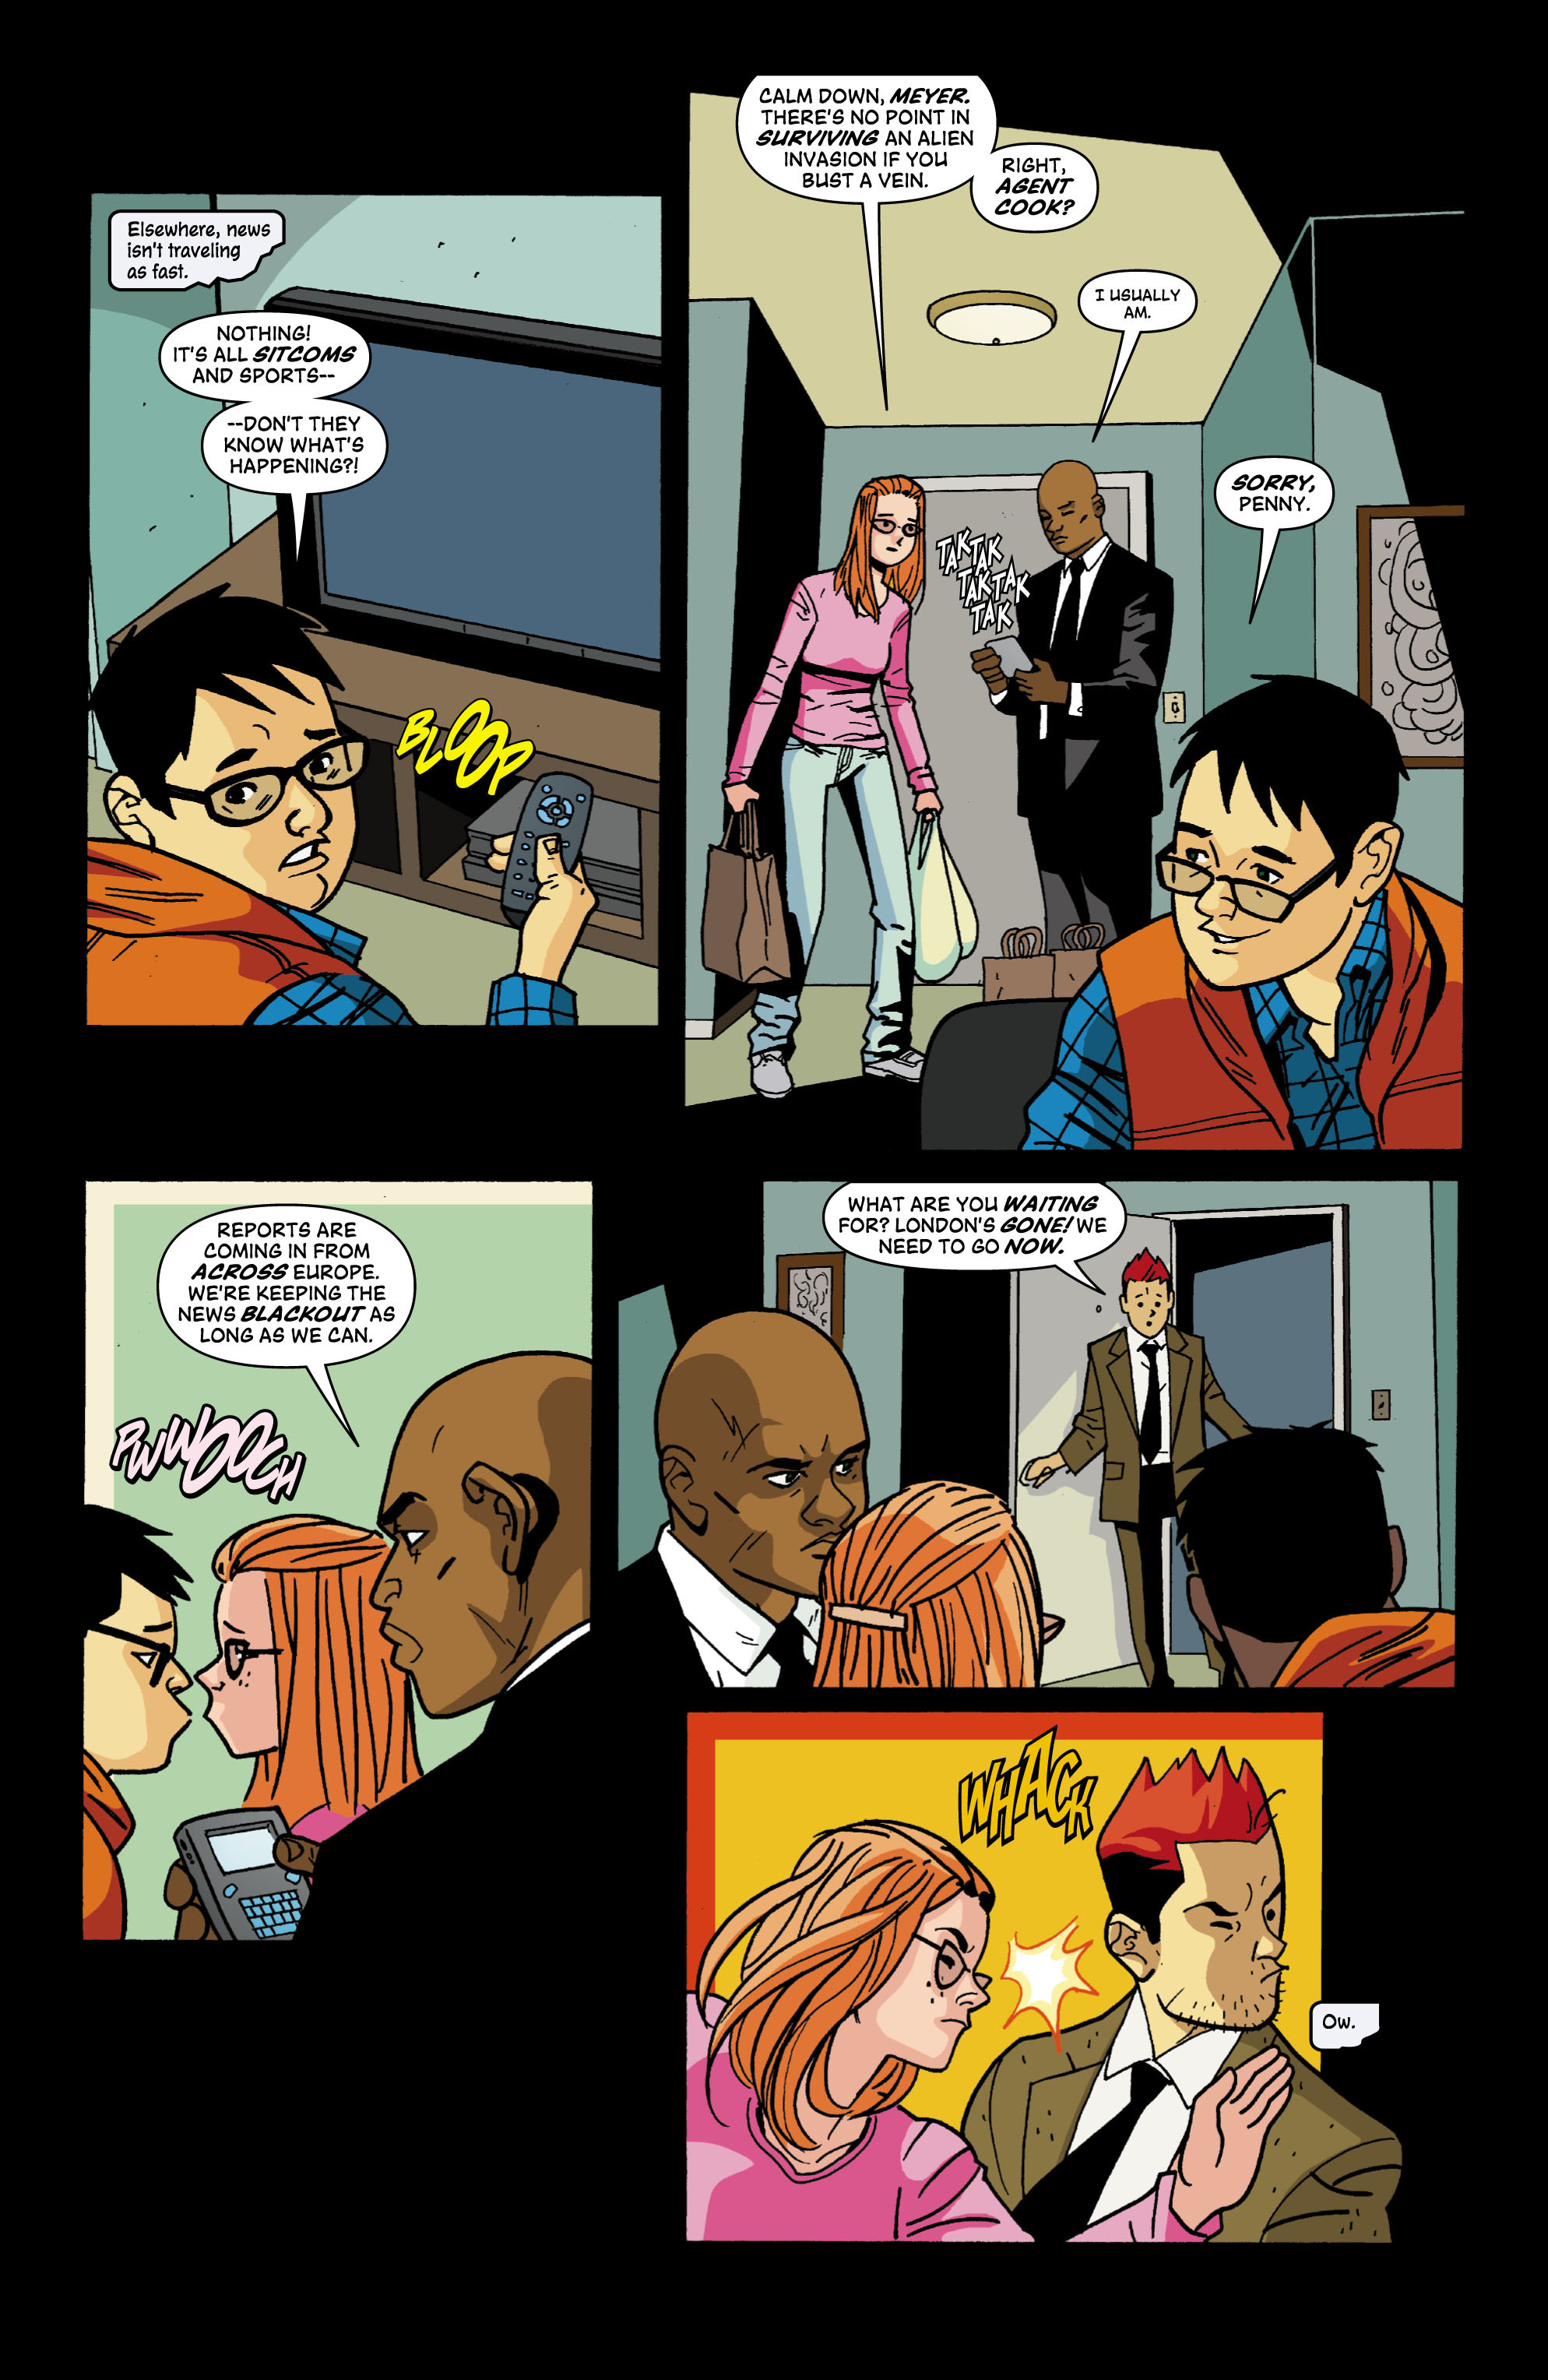 Read online Red Herring comic -  Issue #4 - 10